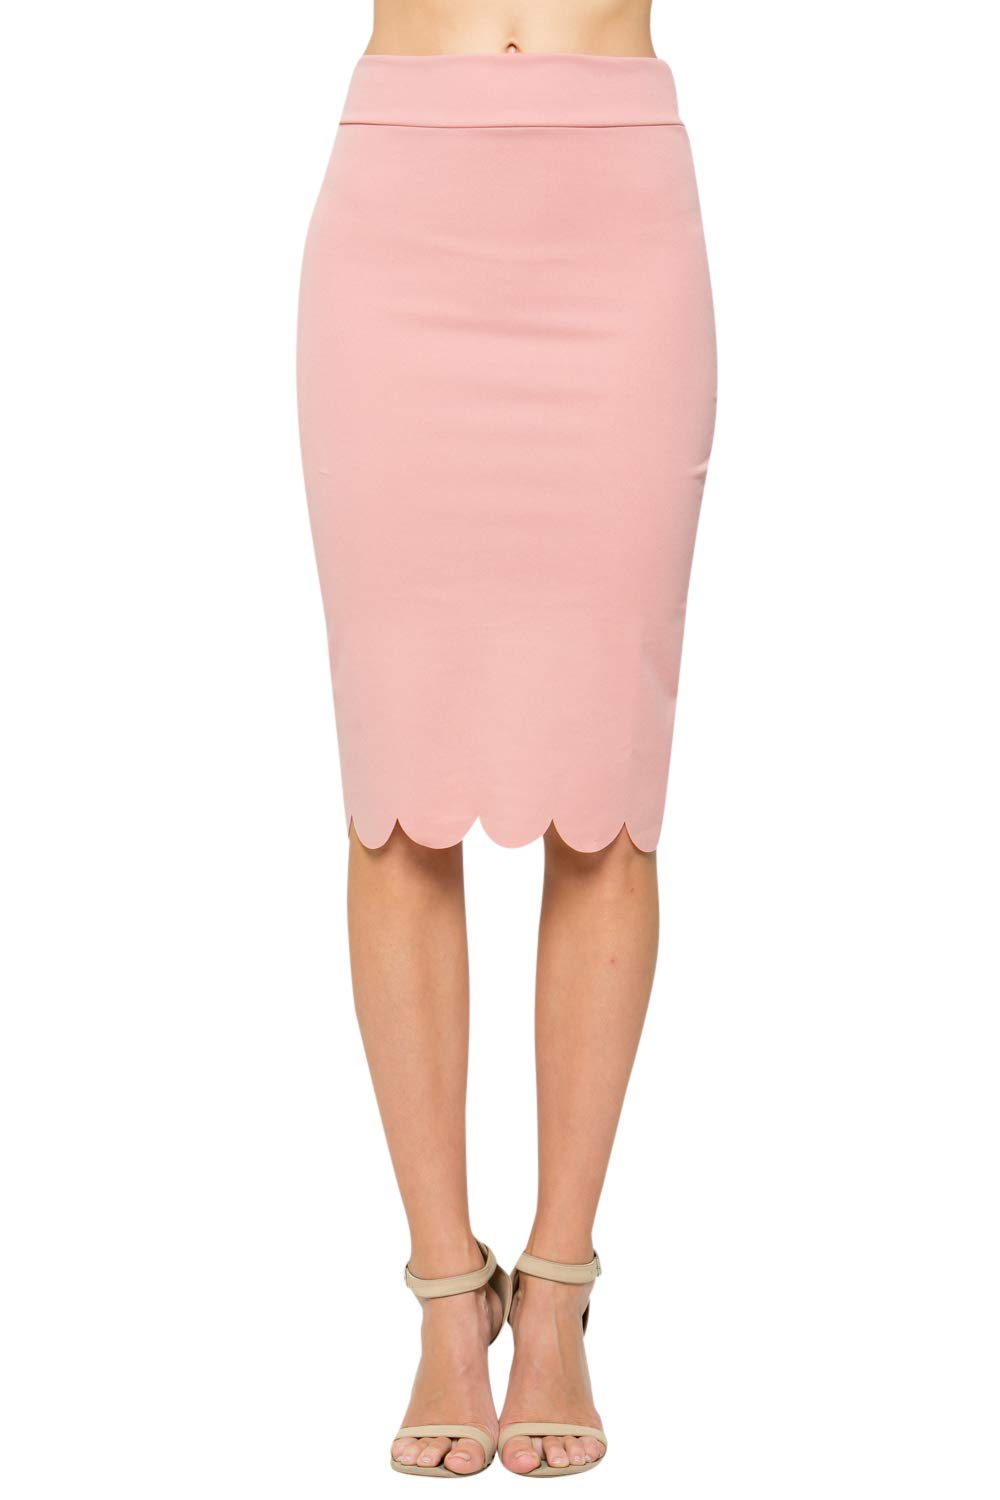 Junky Closet Women's Scallops Knee Length High Waisted Pencil Skirt (Made in USA) (1X-Large, 3635CLAF Dusty Pink) by Junky Closet (Image #1)